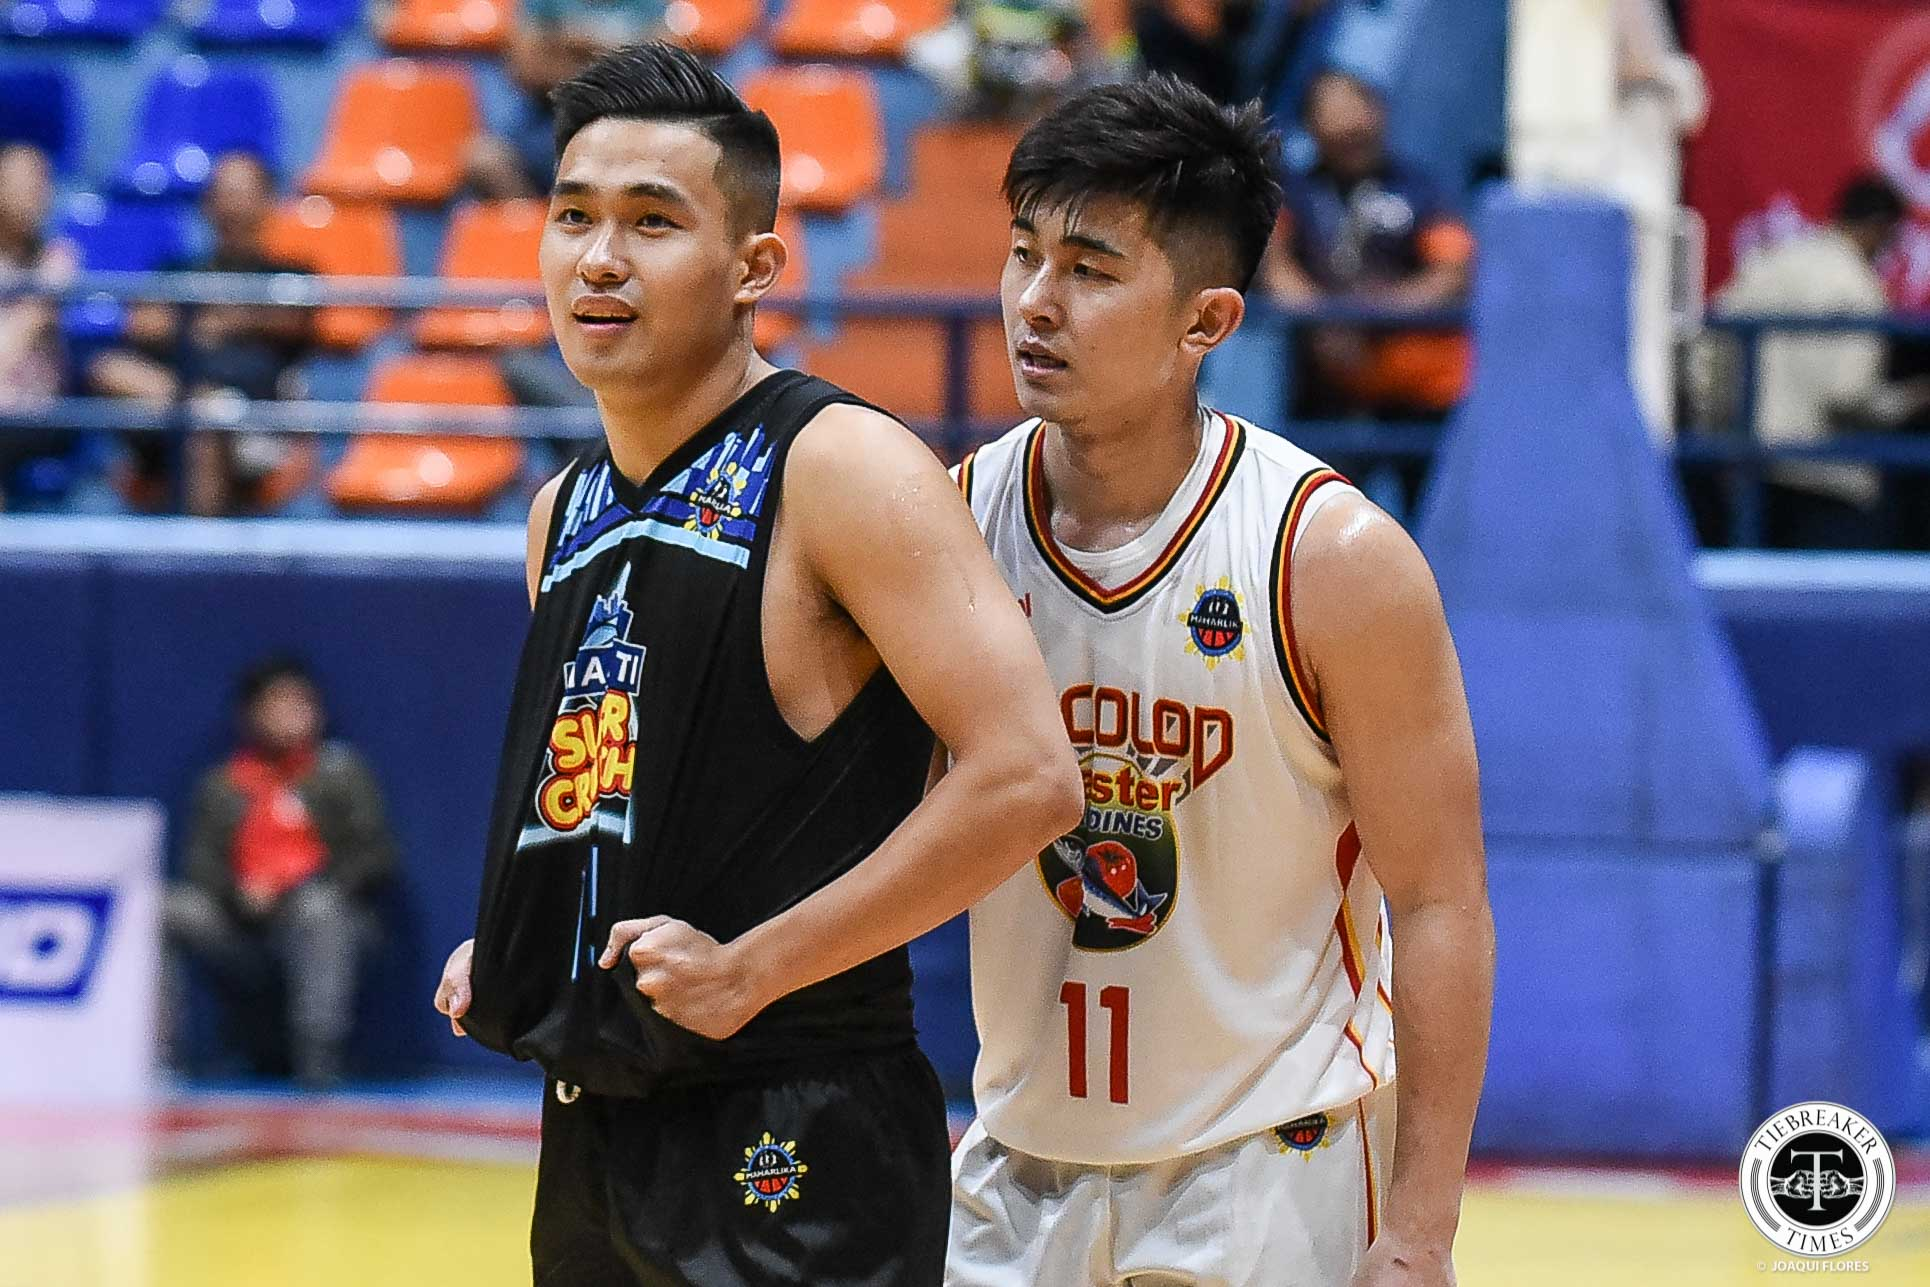 Tiebreaker Times Kib Montalbo's childhood dream was to play for Bacolod Basketball MPBL News  Makati Super Crunch Kib Montalbo Bacolod Masters 2019-2020 MPBL Lakan Cup